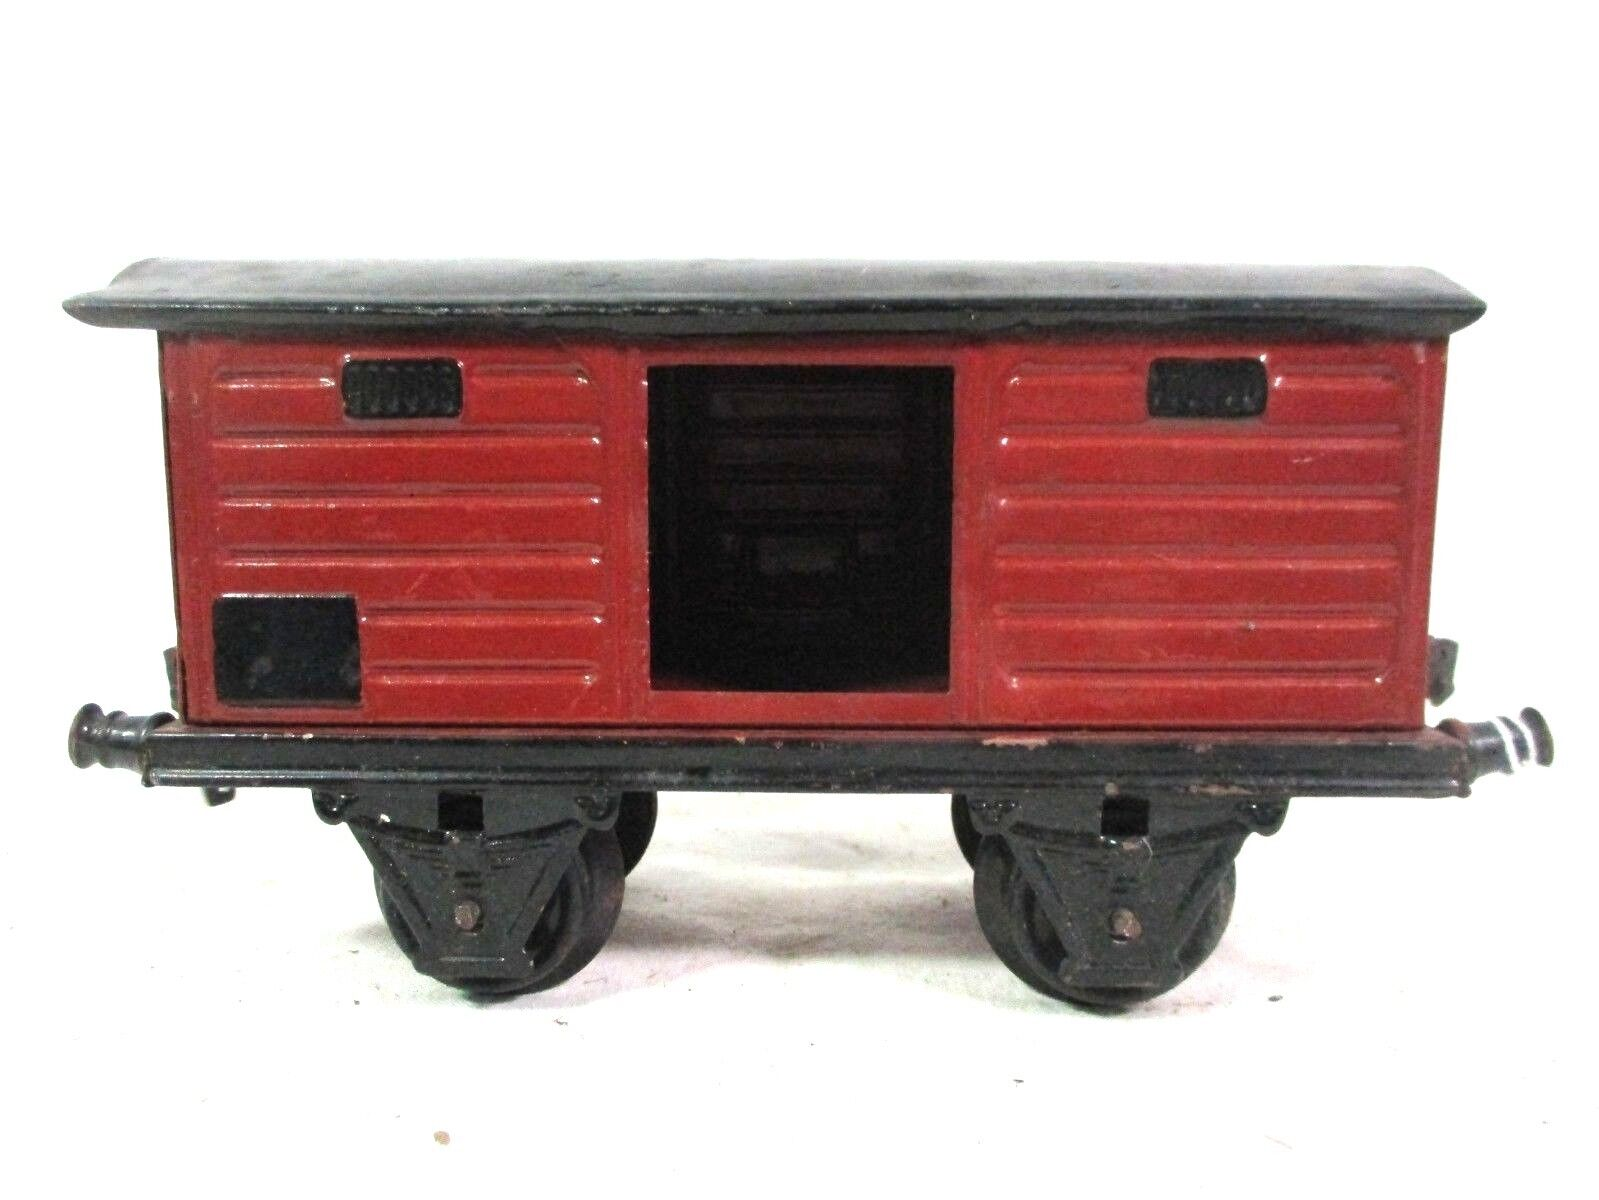 Marklin 1 Gauge Train Car Rare Vintage Model Train Railway B15